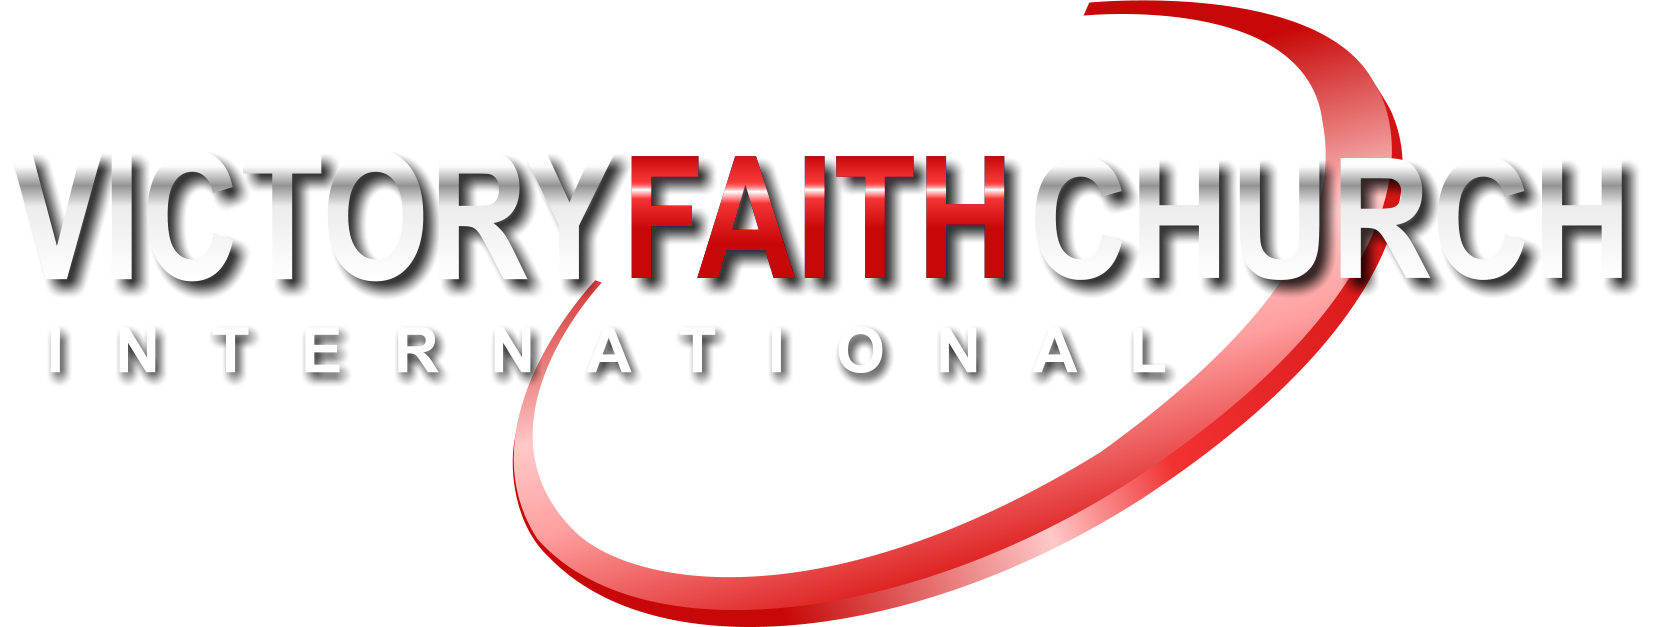 Victory Faith Church International